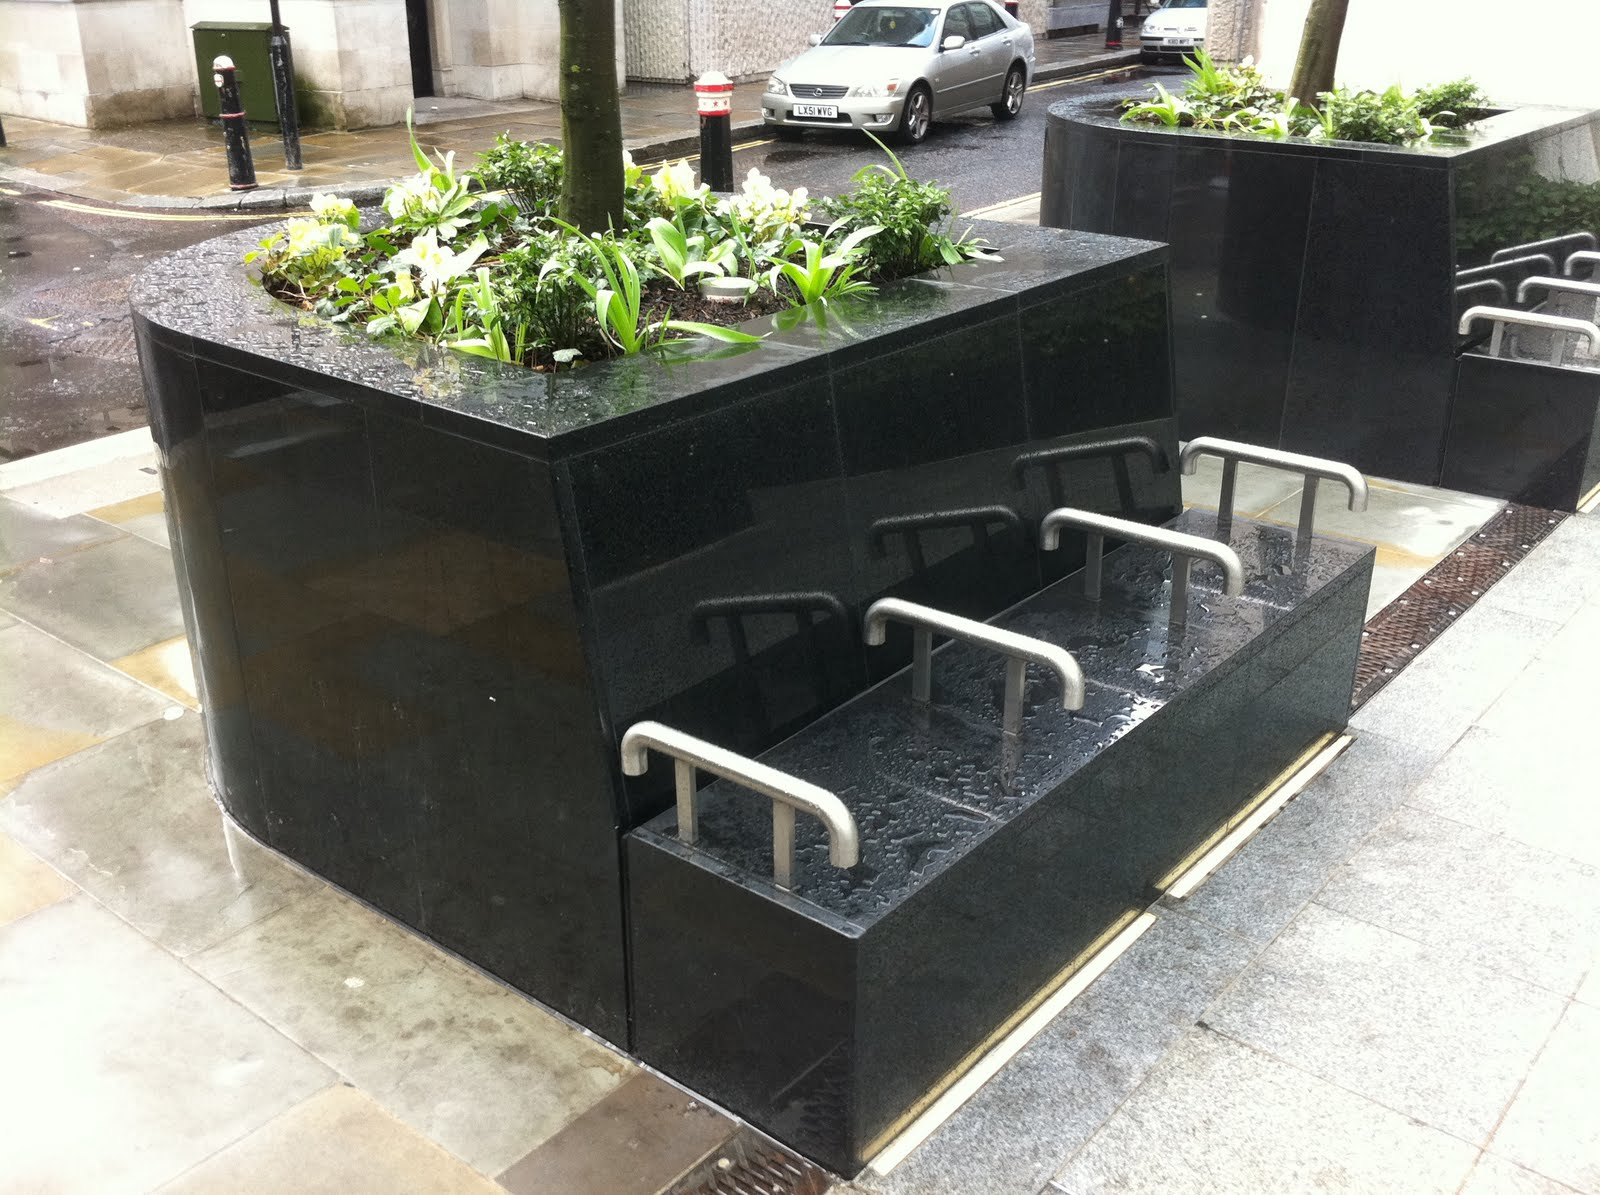 An Architectural Inspired Pocket Park With Some Modern Marble Benches